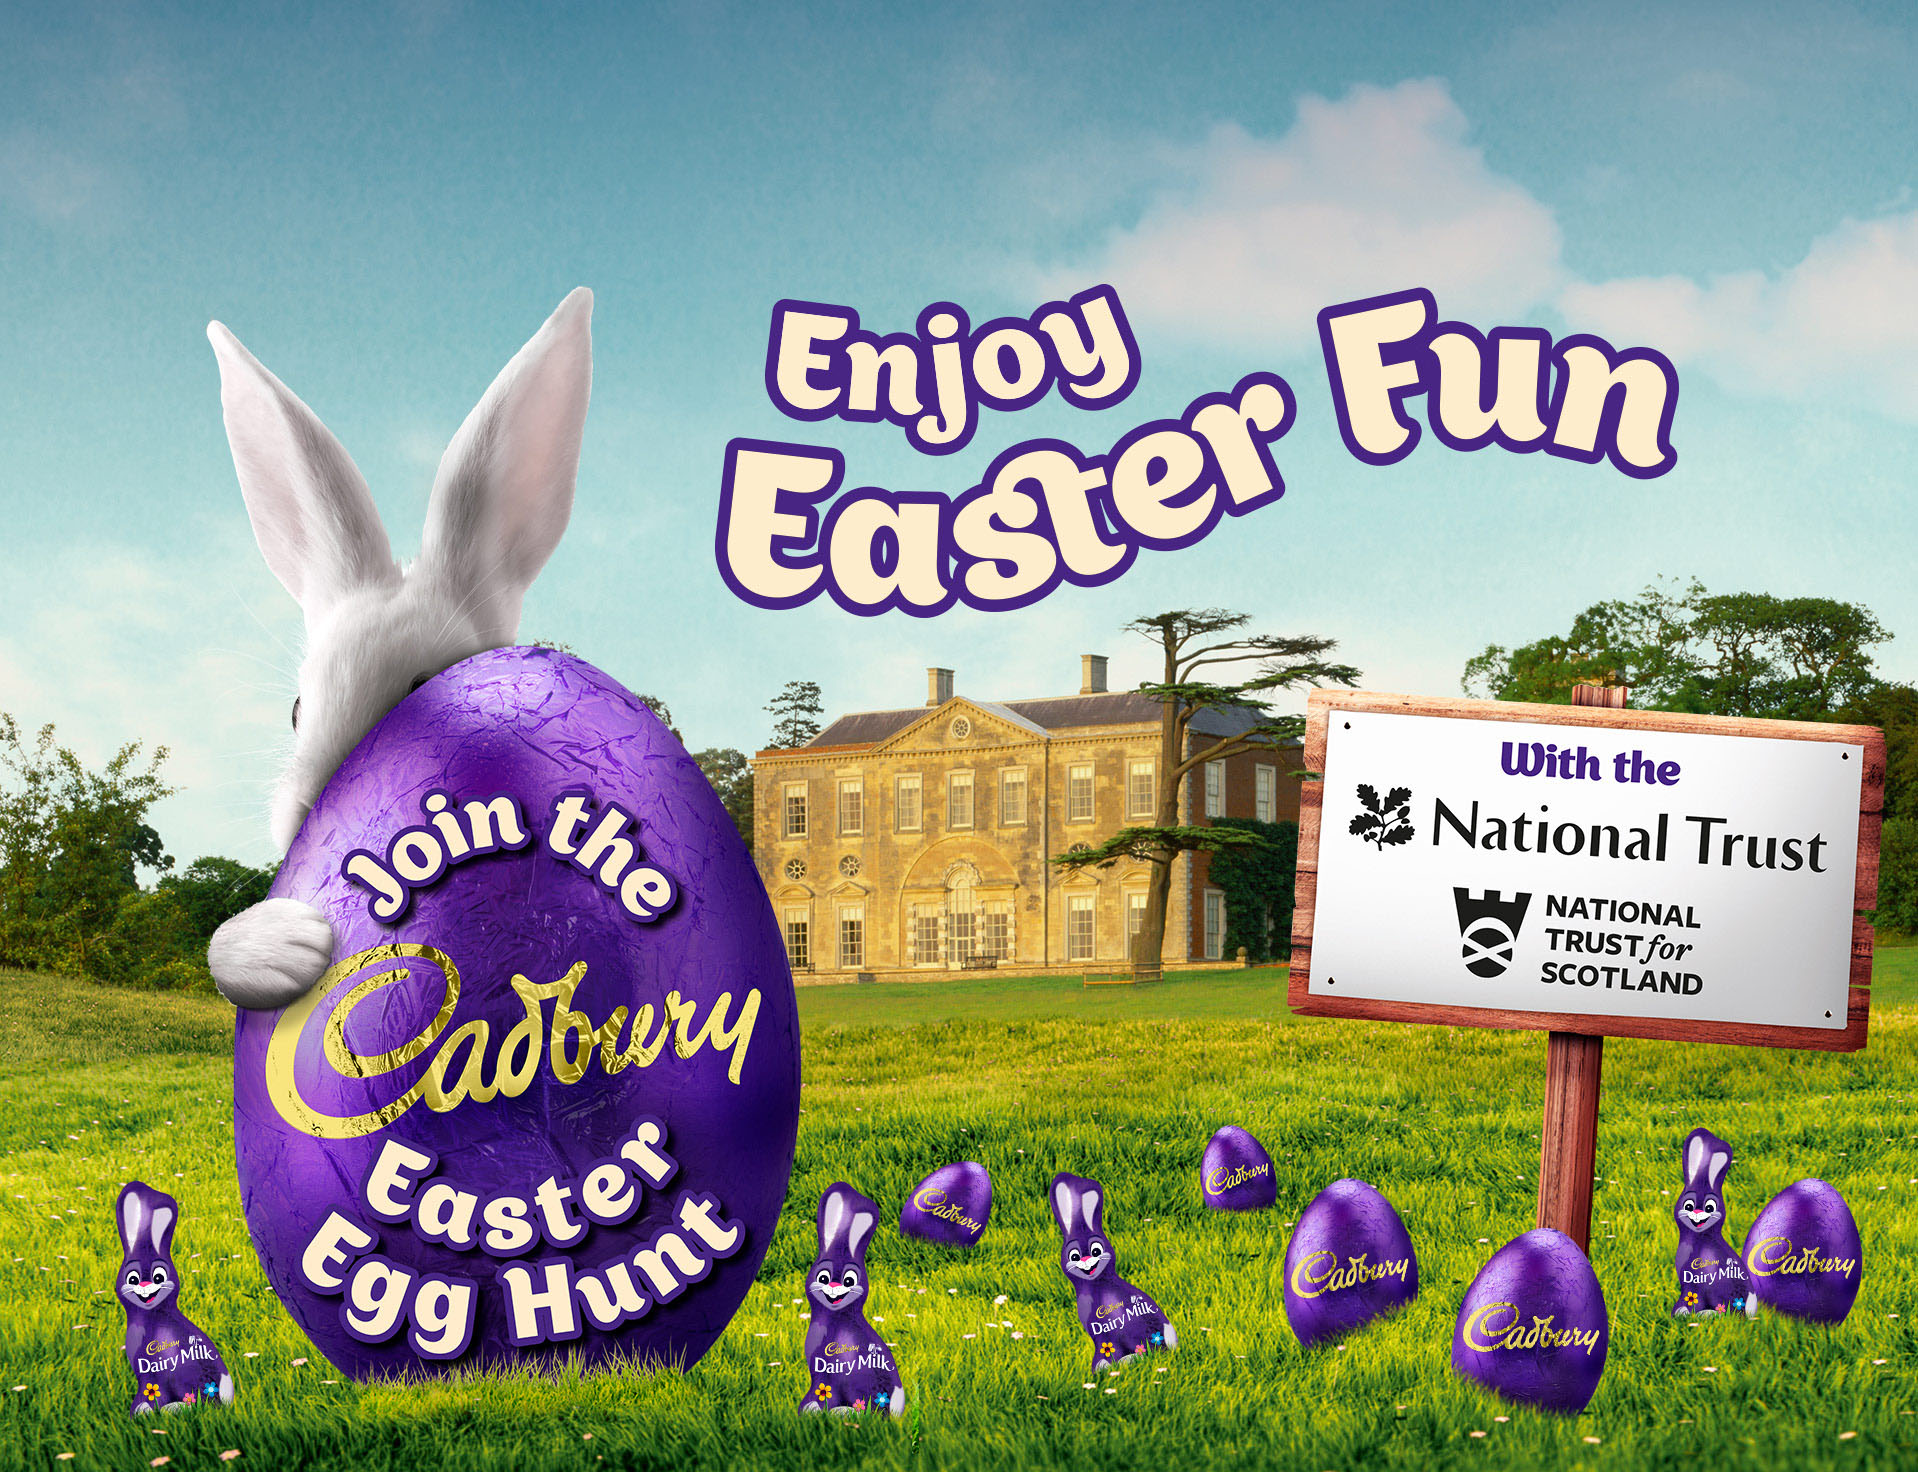 Where are the Cadbury Easter Egg Hunts and how to get involved?